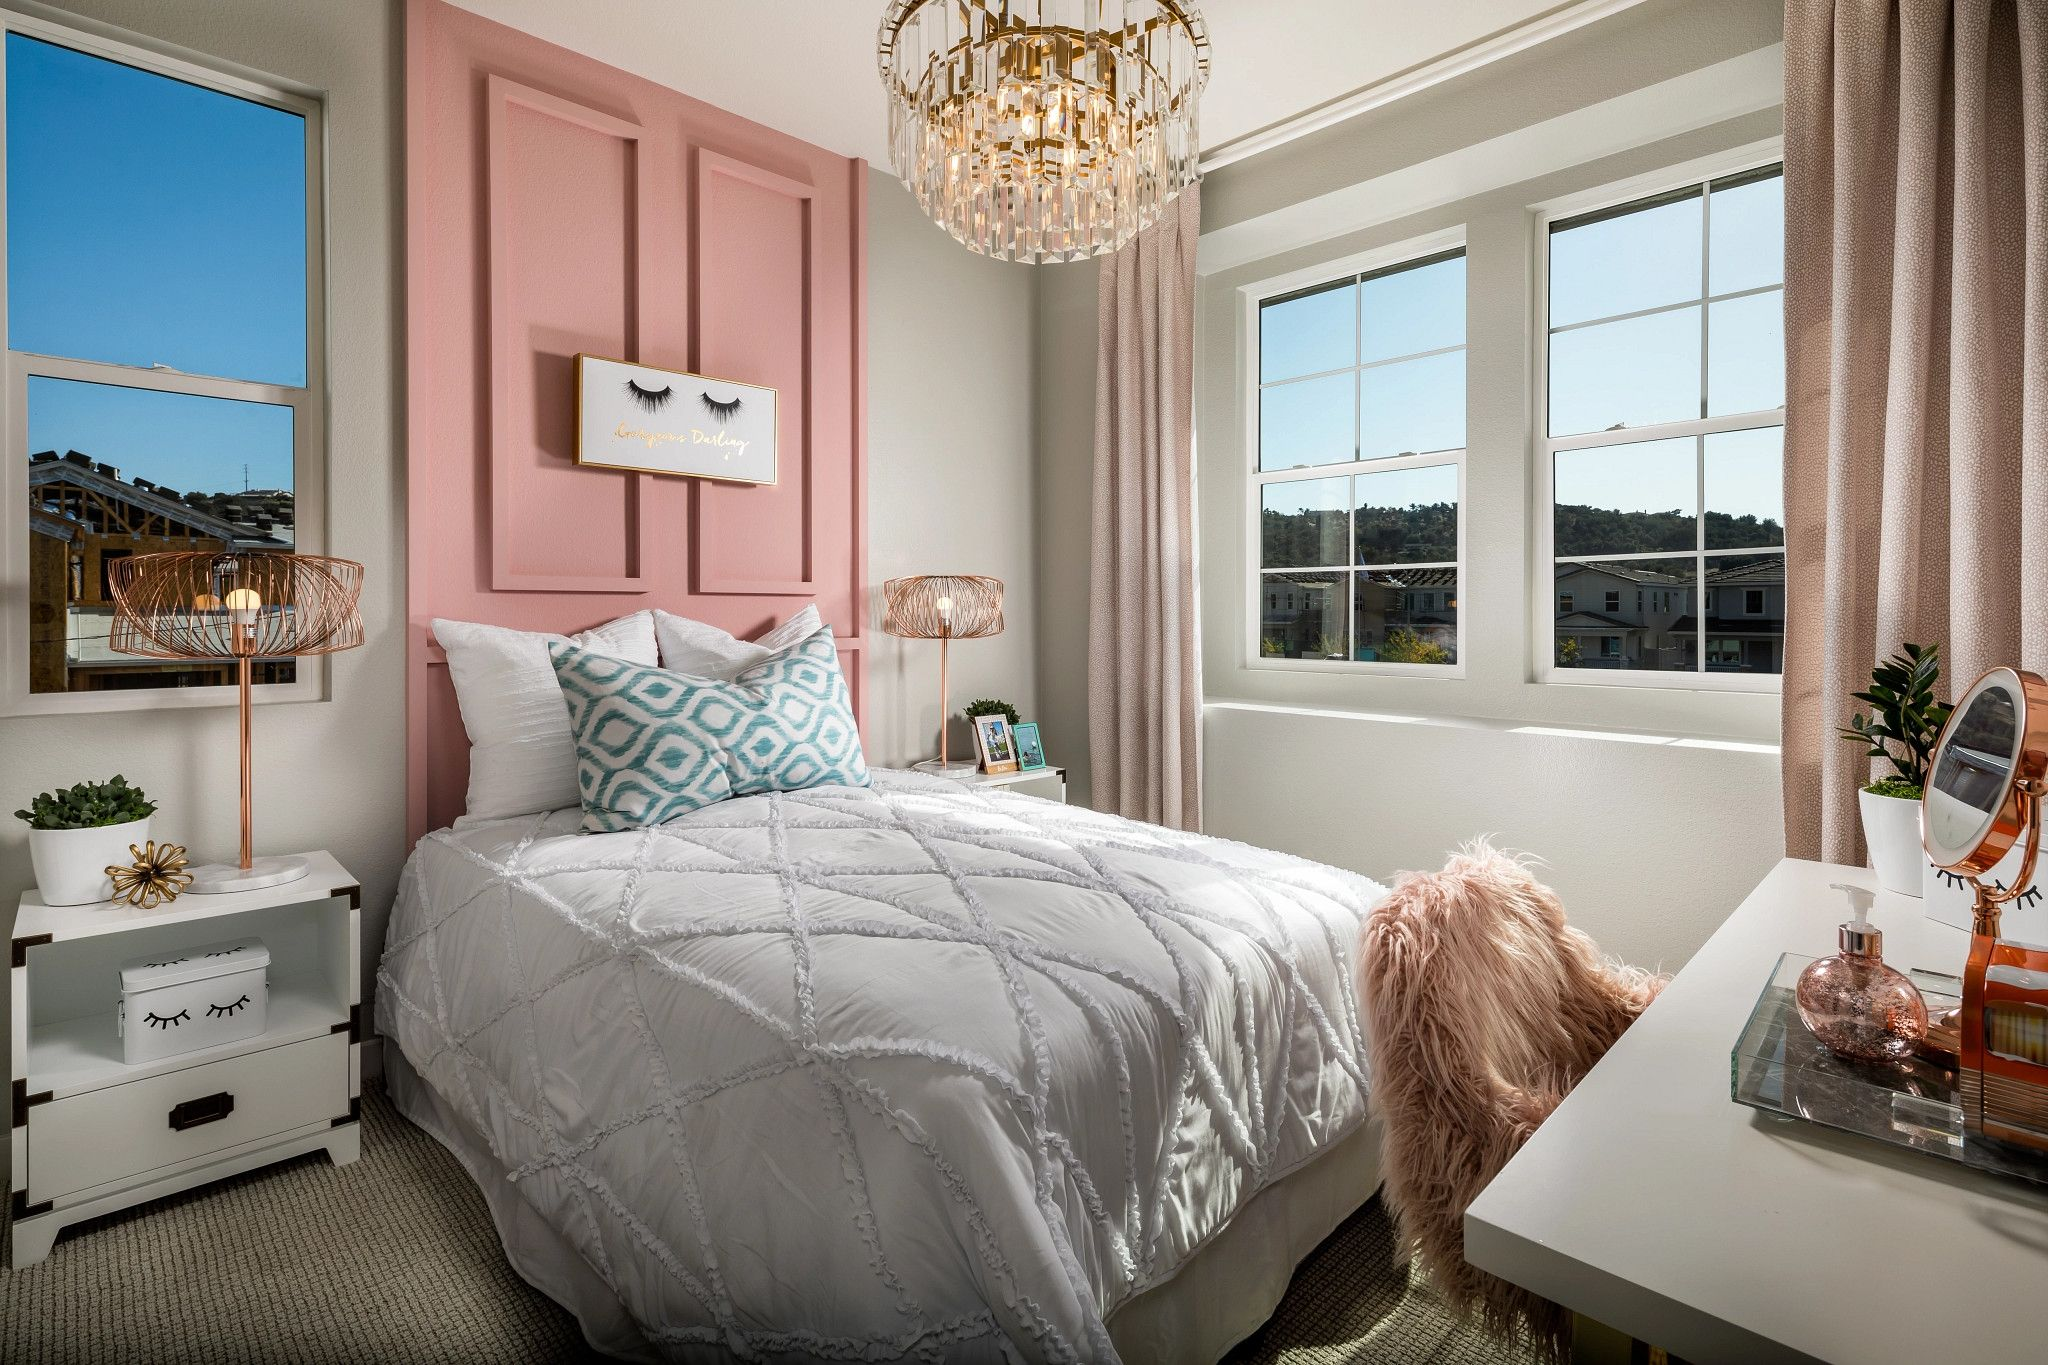 Bedroom featured in the Plan 3 By Shea Homes in San Diego, CA